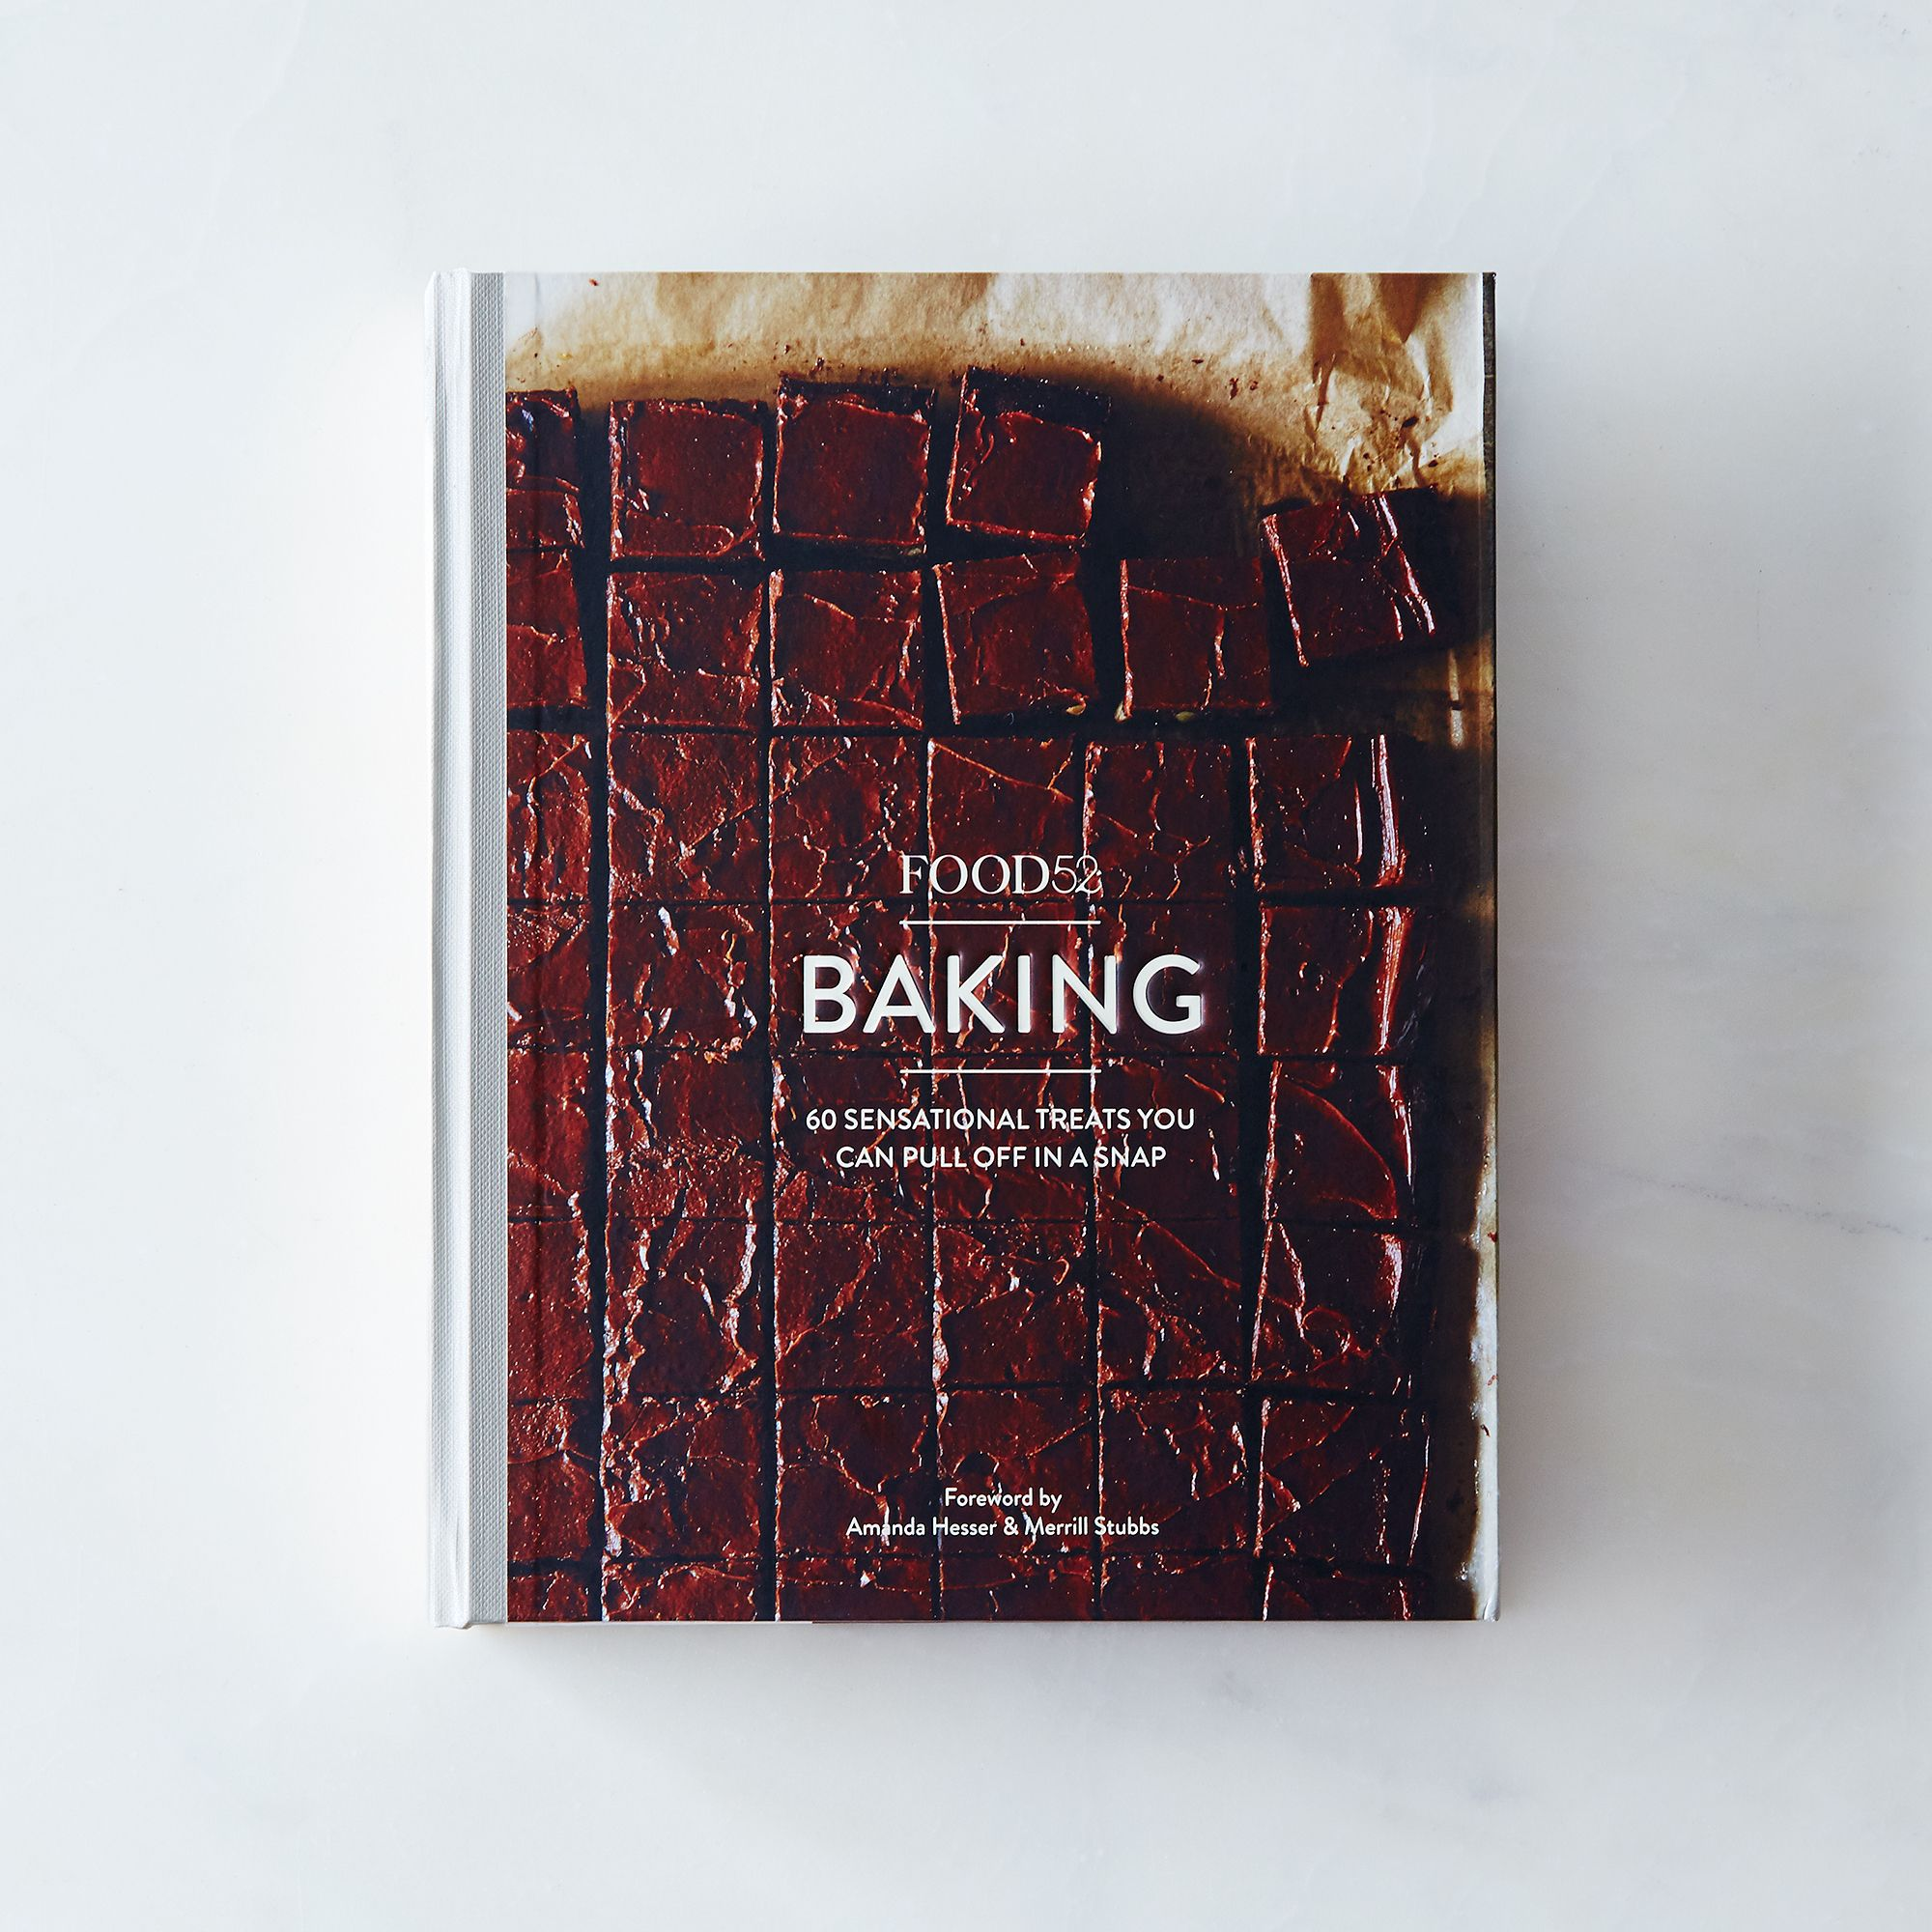 739a9914 a0f8 11e5 a190 0ef7535729df  2015 0527 food52 baking book james ransom 015